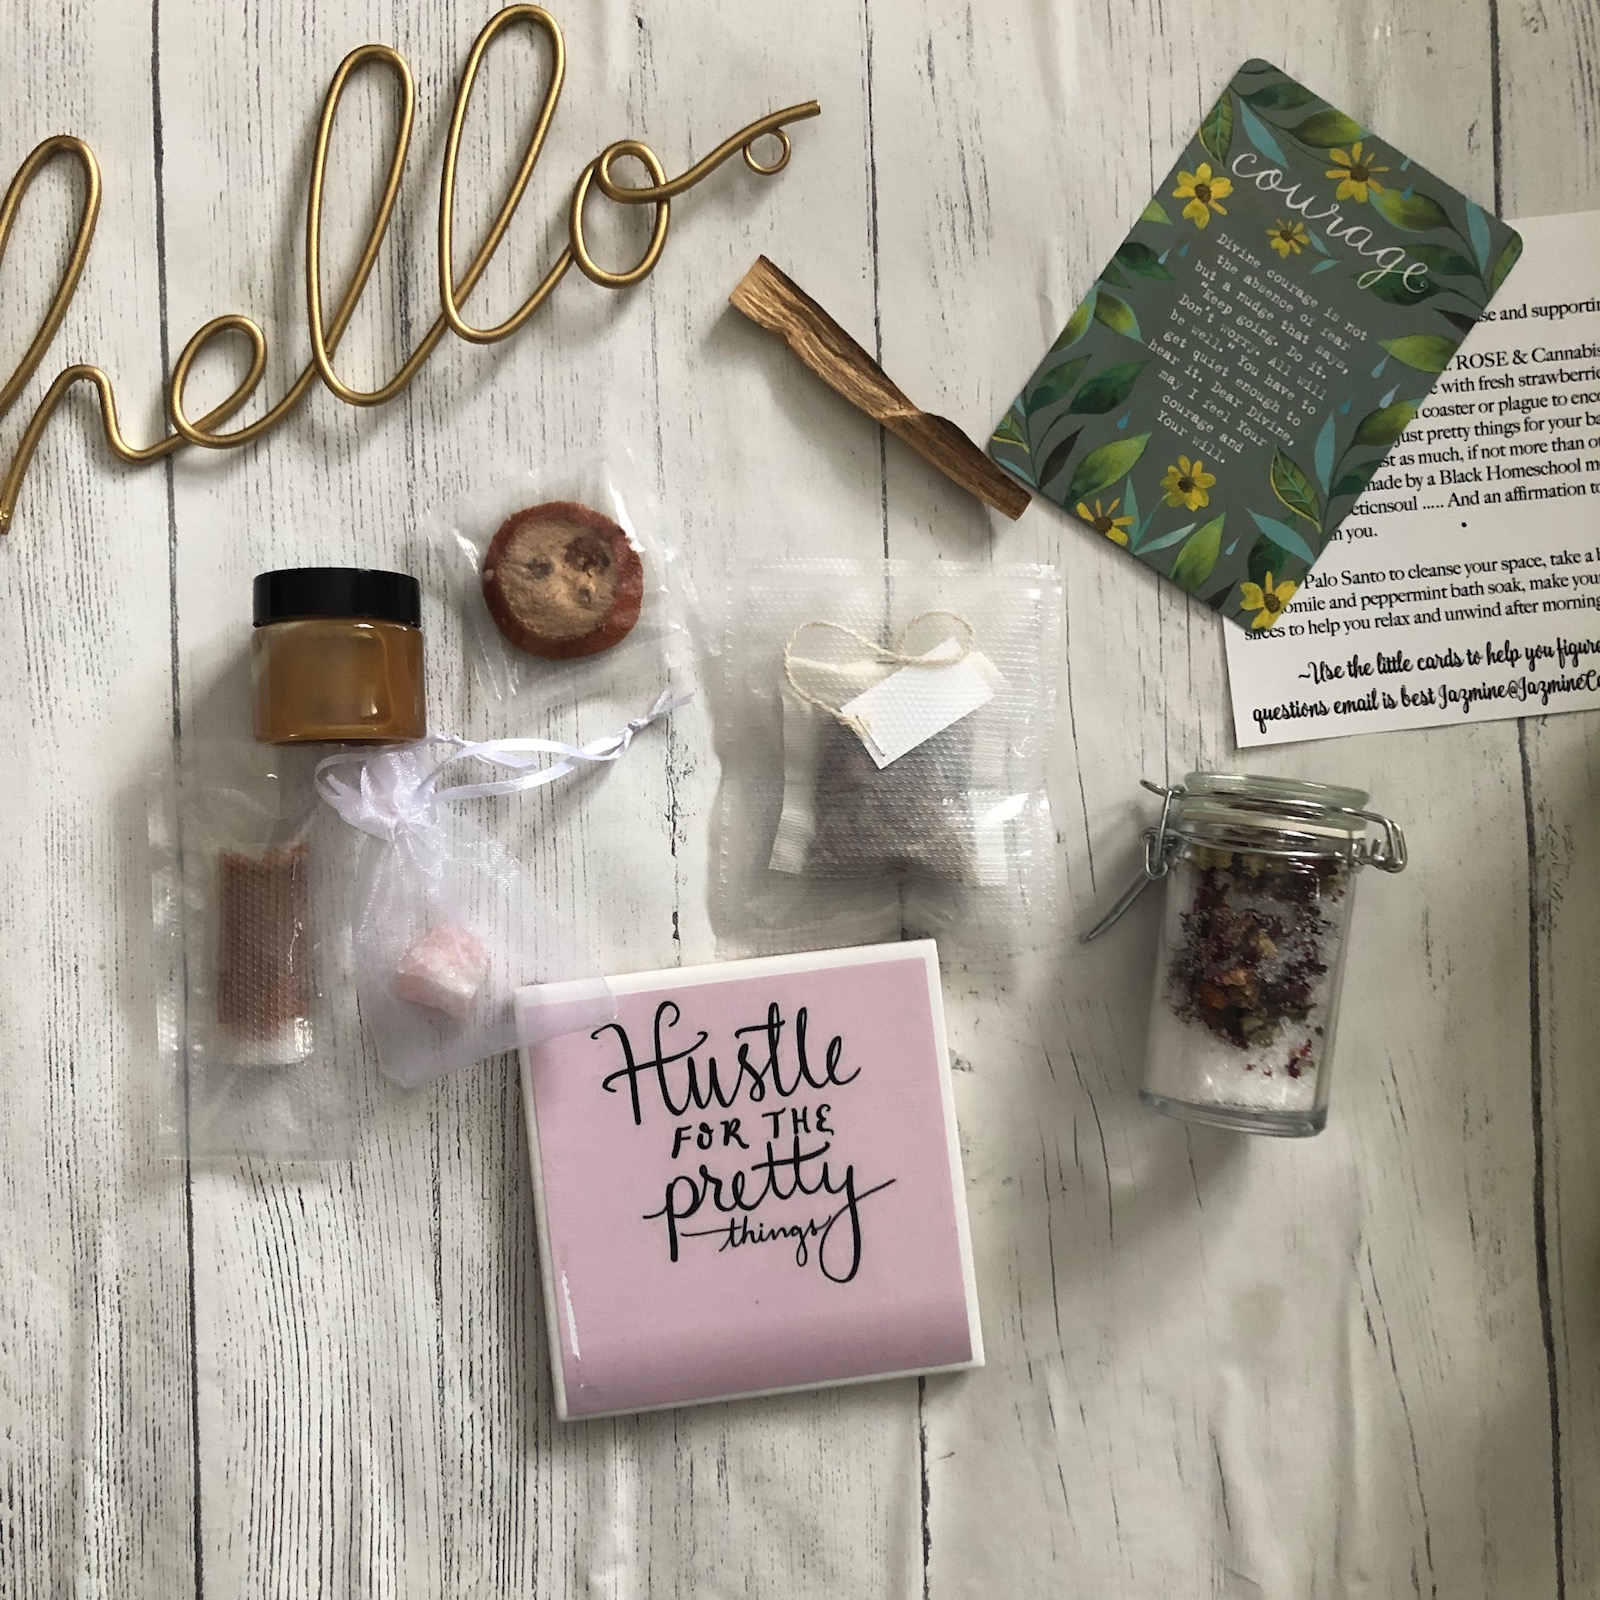 I want to bring you wellness - By offering Monthly Wellness Boxes!!!